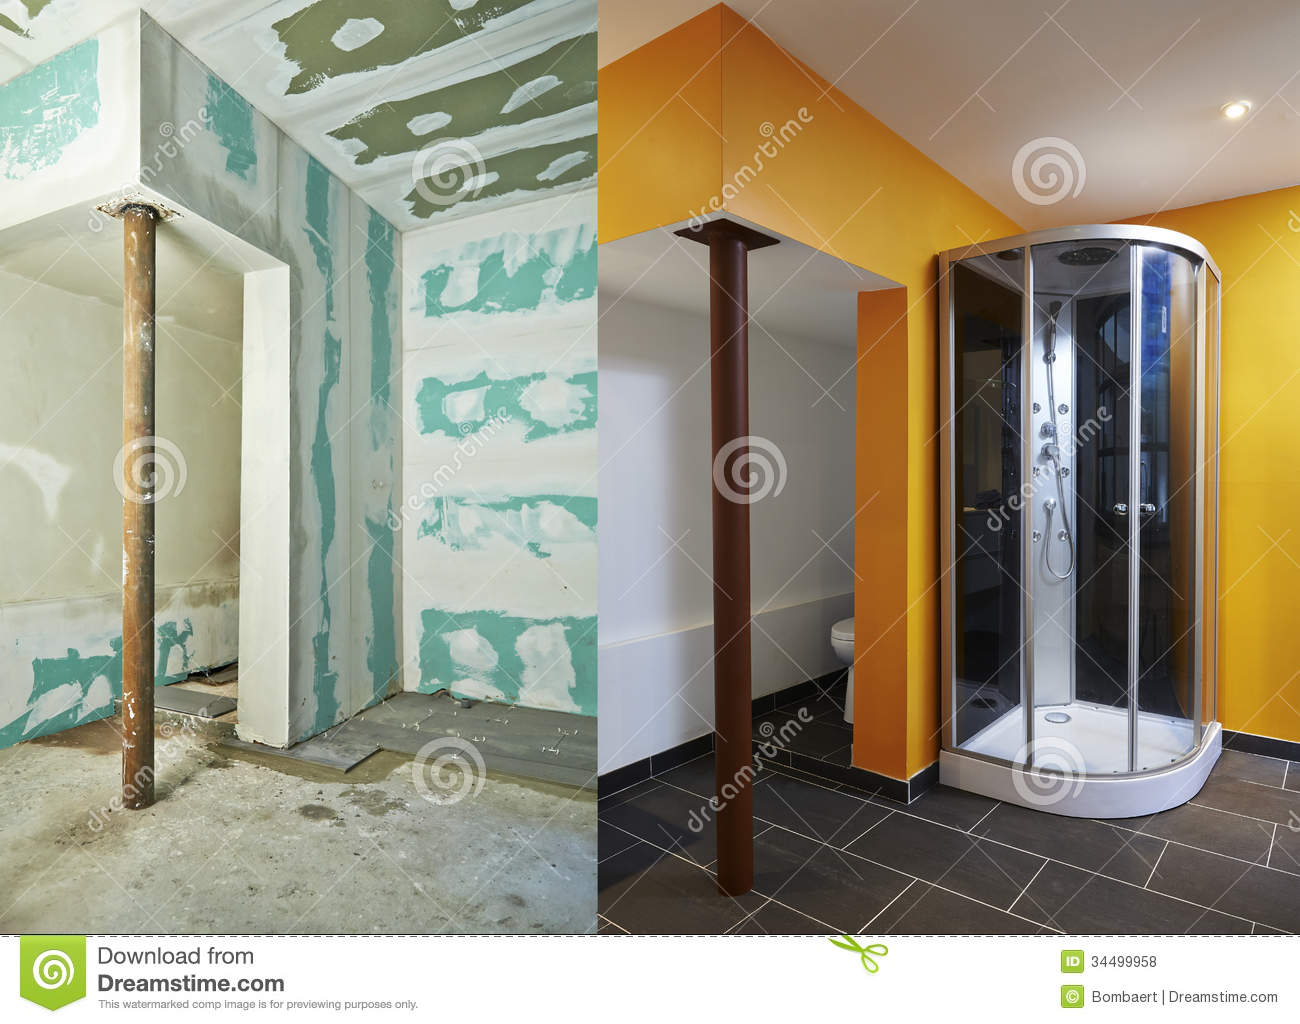 Drywall plasterboard and bathroom stock photo image of floor door 34499958 What sheetrock to use in bathroom